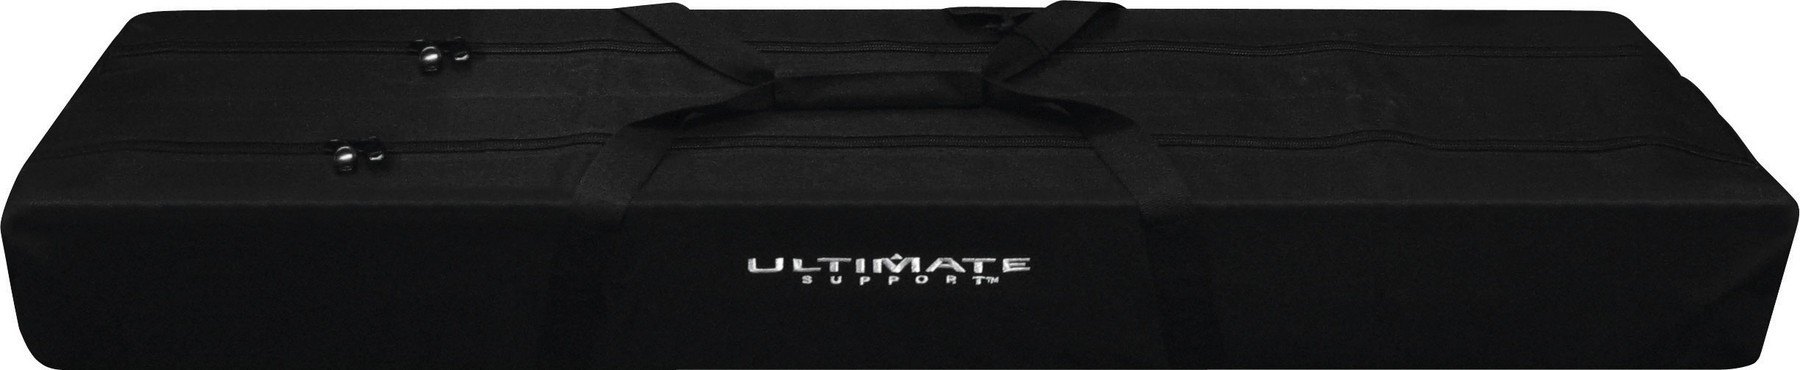 ultimate-support-bag-90d-speaker-stand-bag.jpg